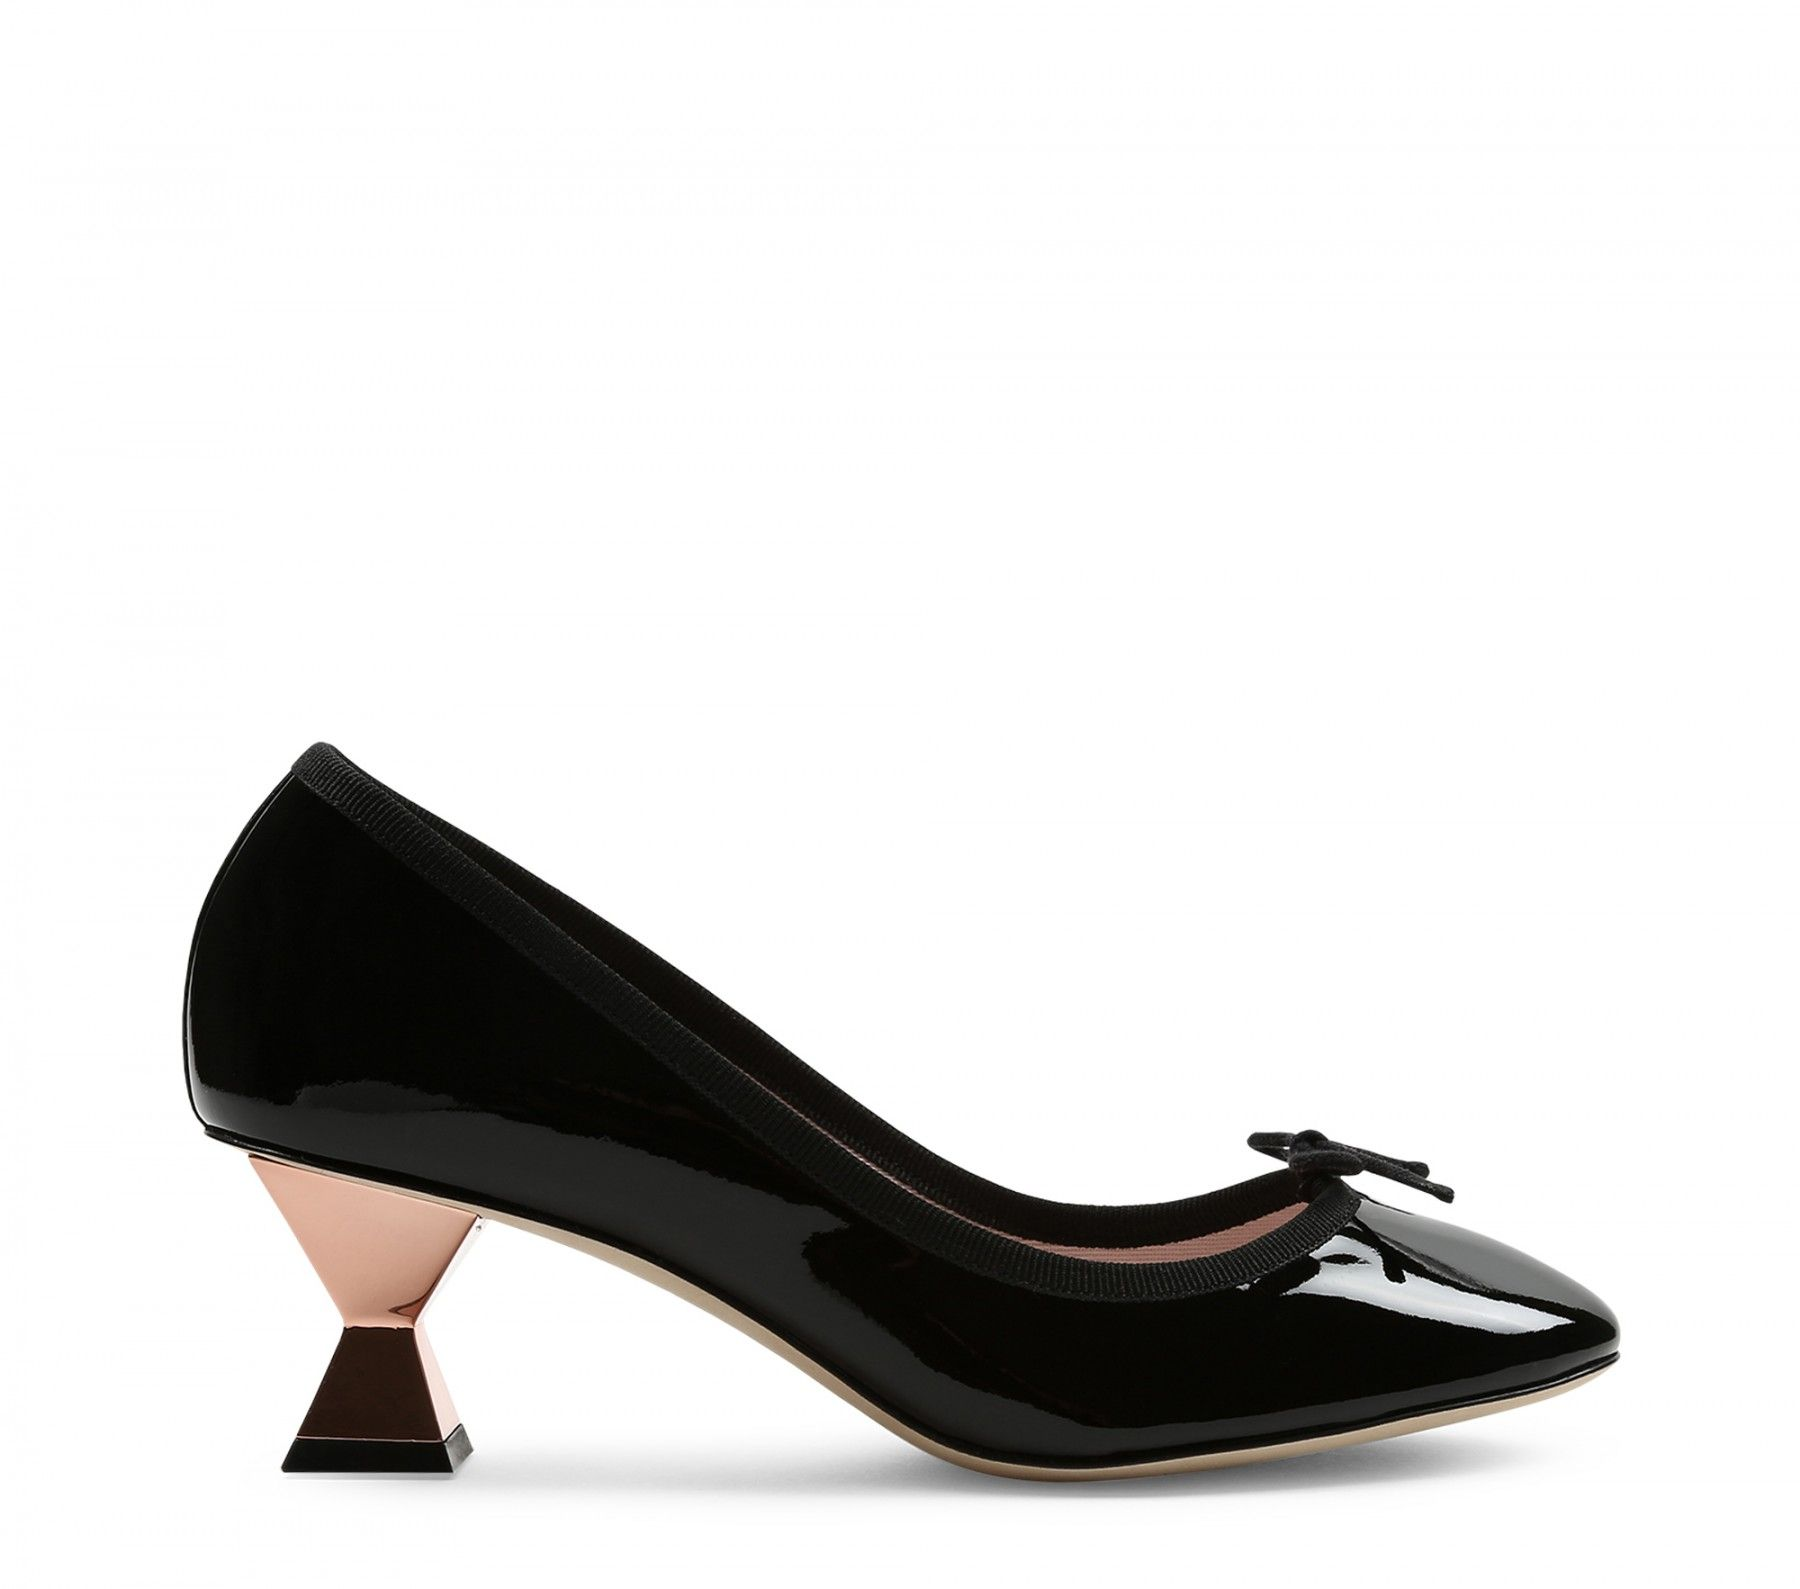 b151a3699f89 Ballerine Isadora - Ballerines - Chaussures - Femme   What I want in ...